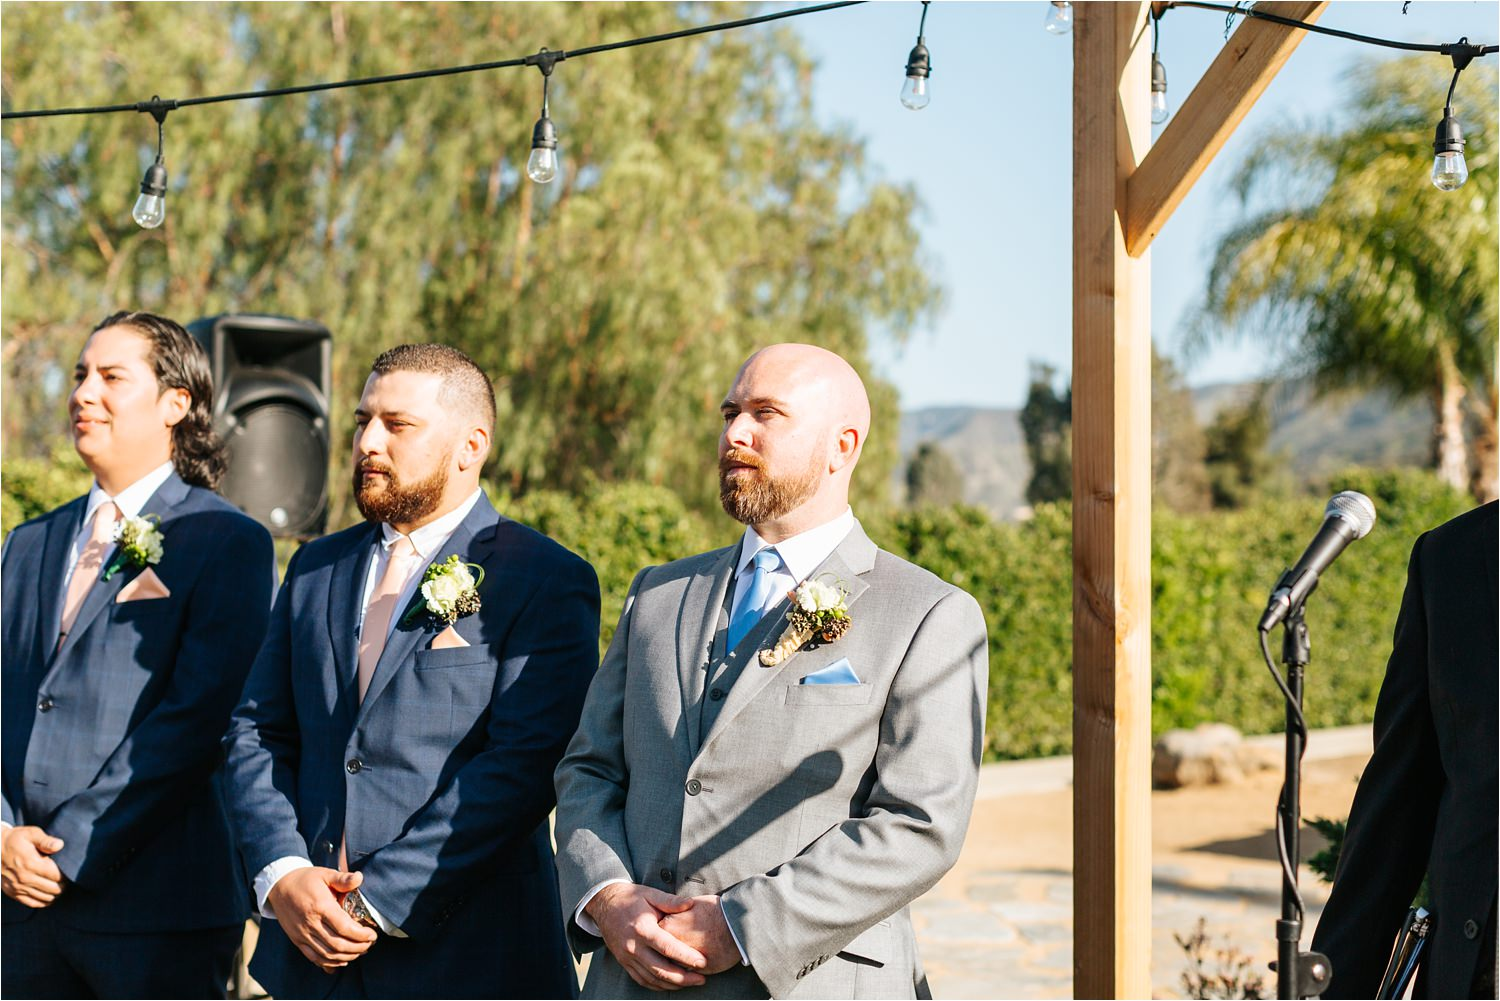 Groom seeing bride for the first time - Backyard Wedding - https://brittneyhannonphotography.com